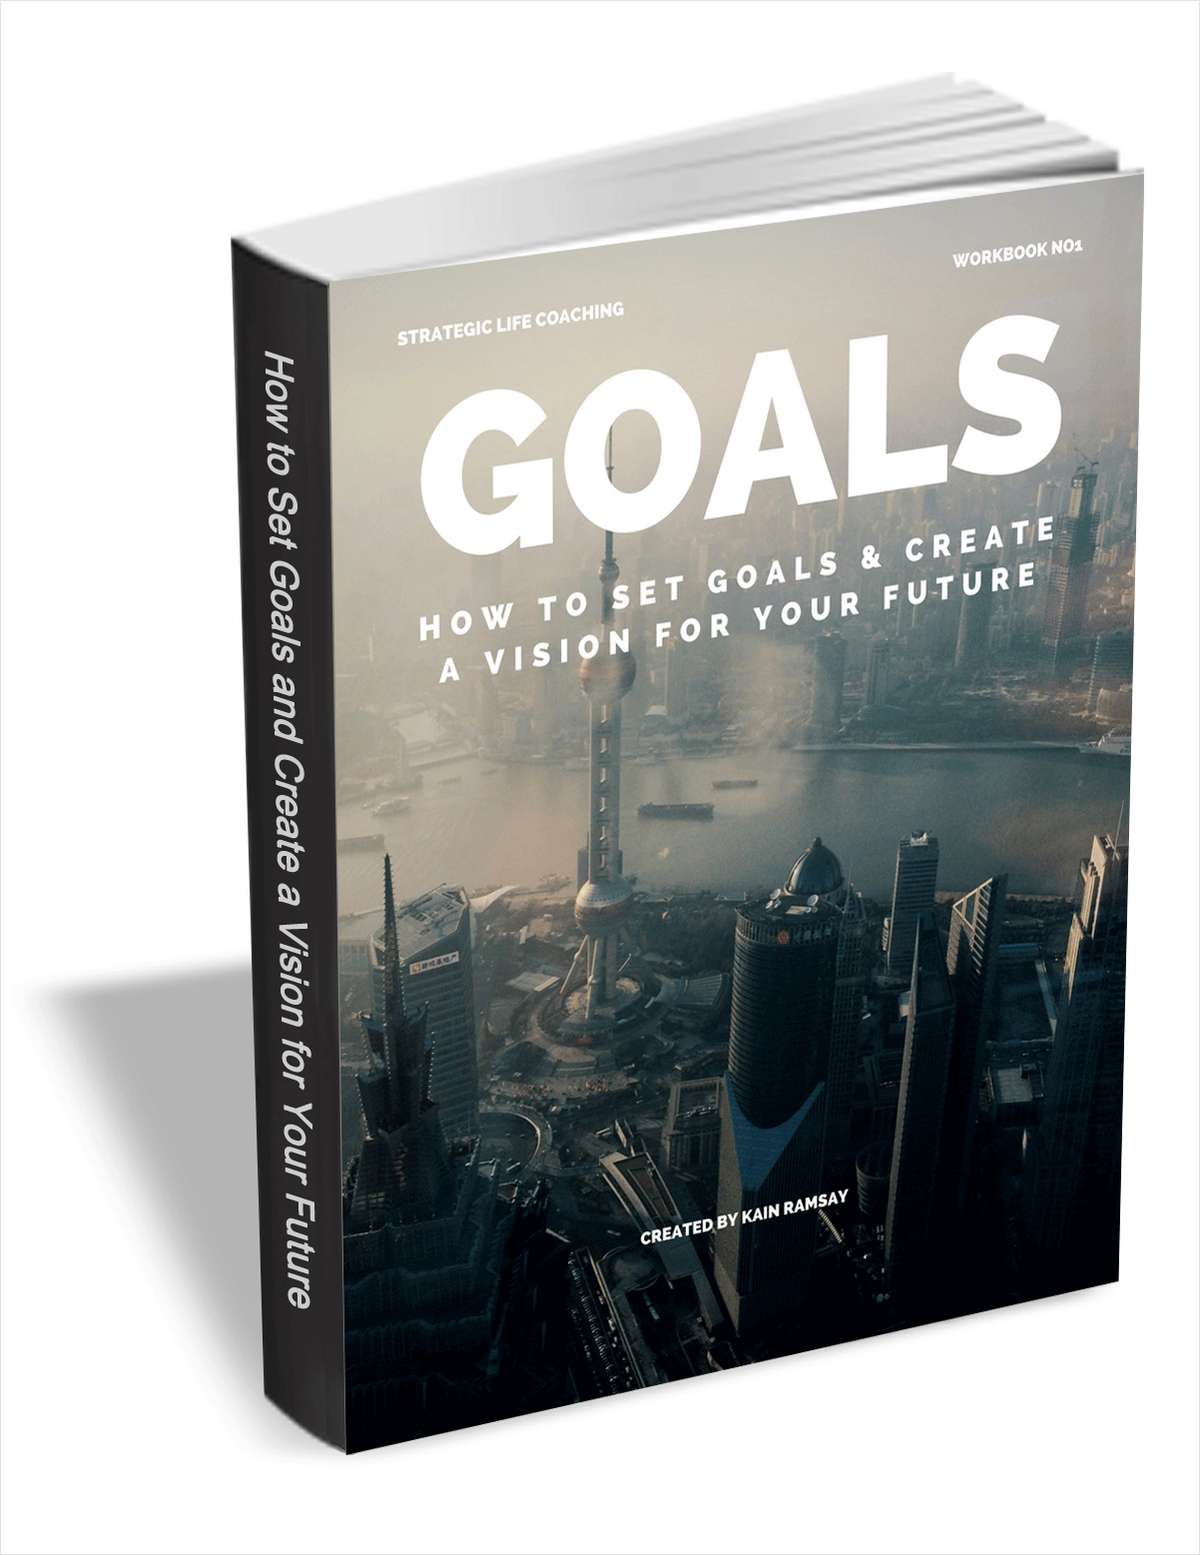 Goals - How to Set Goals & Create a Vision for Your Future